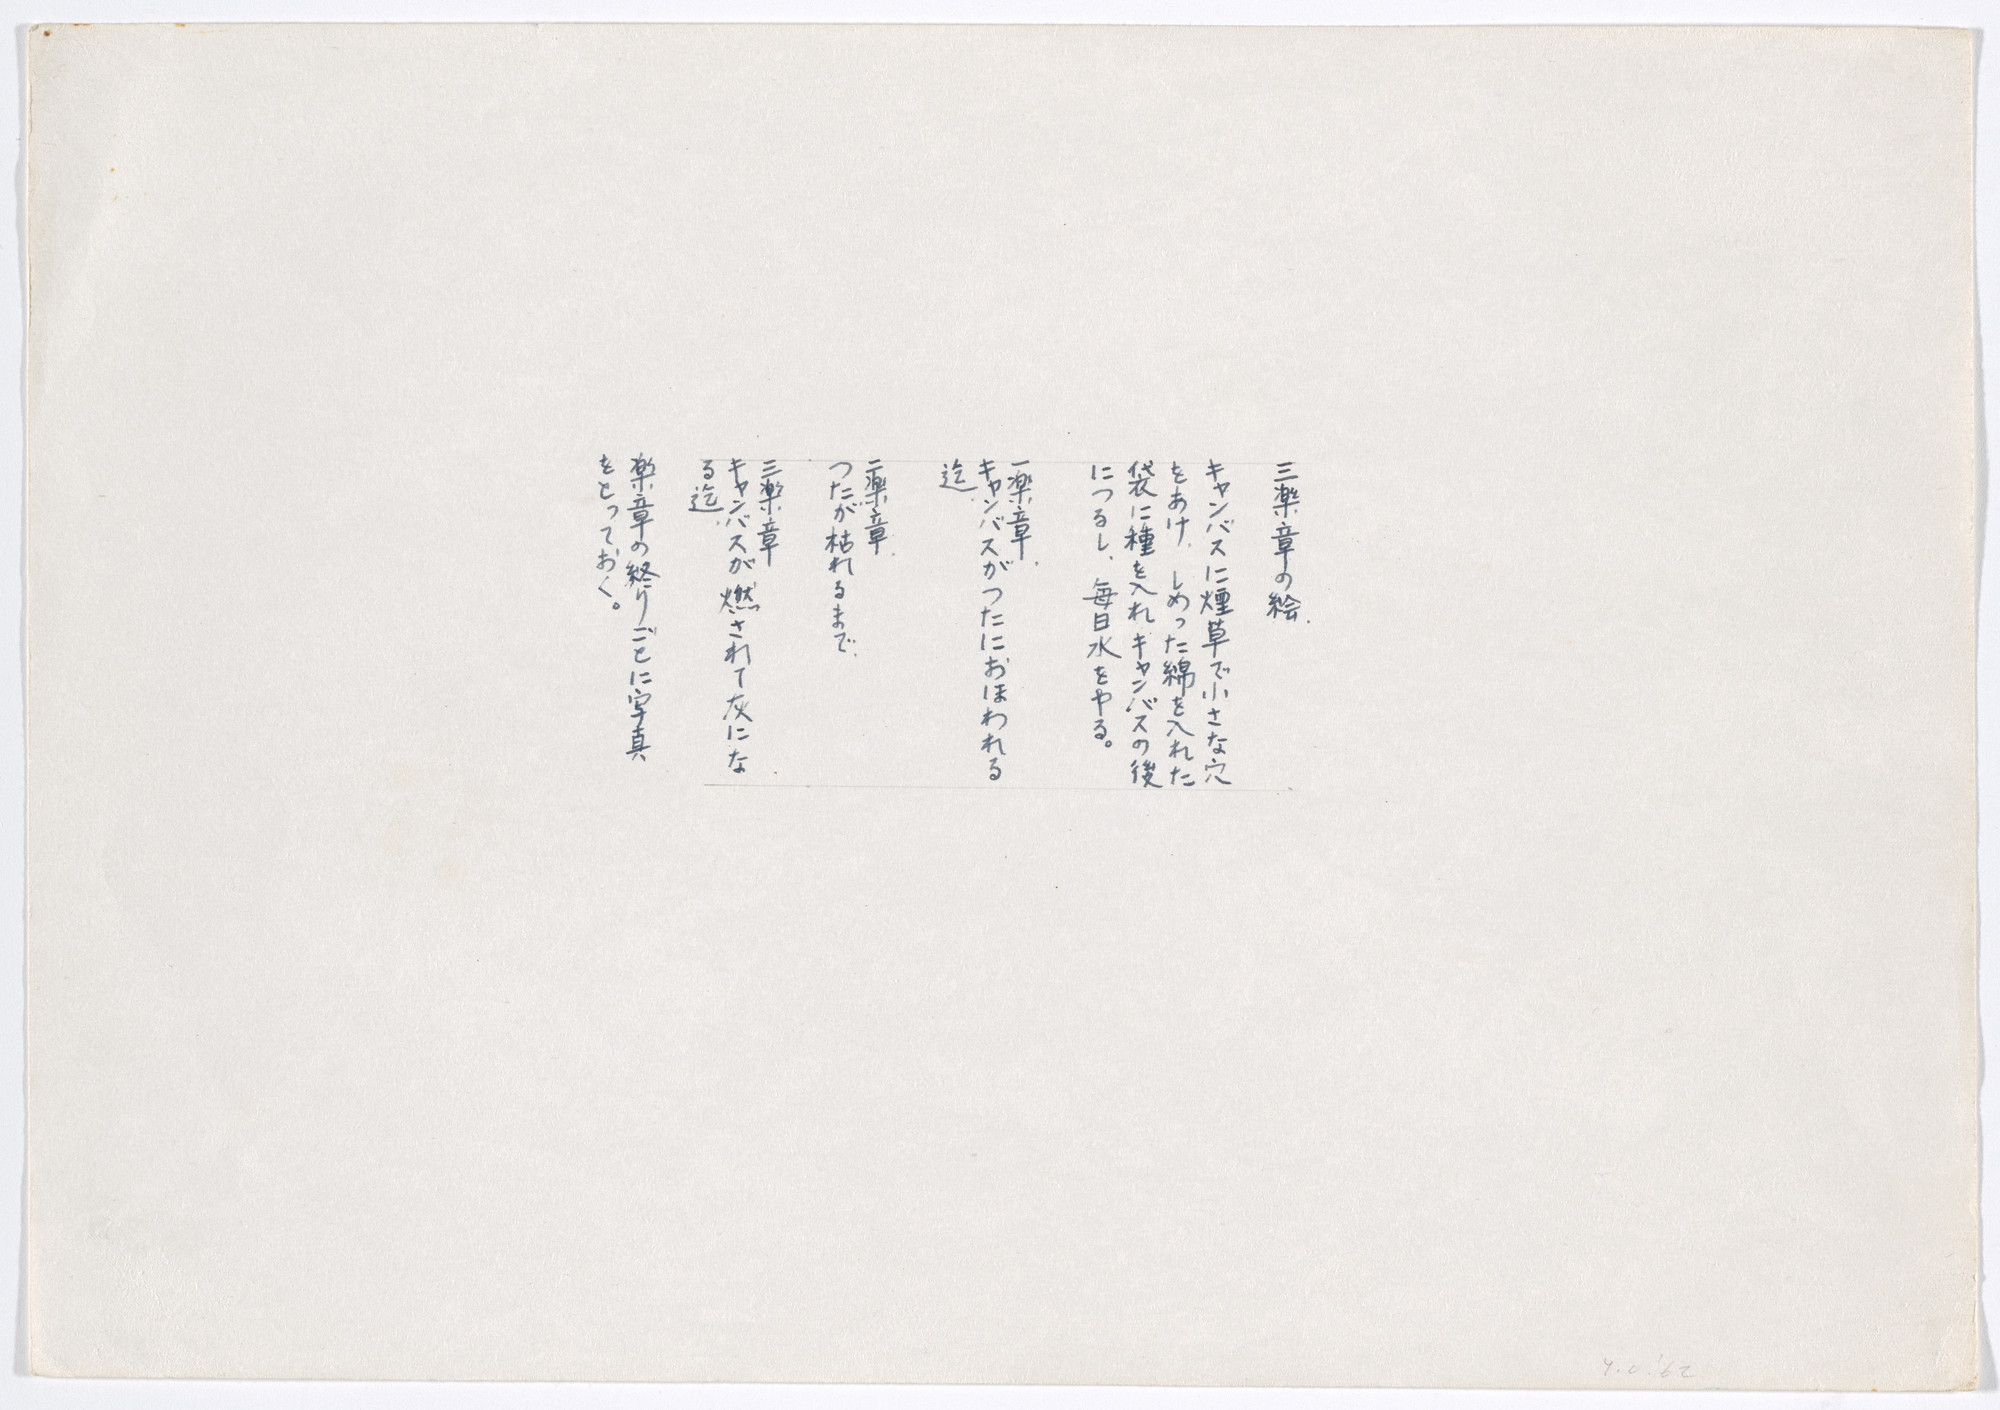 A selection from Yoko Ono's Instructions for Paintings. 1962